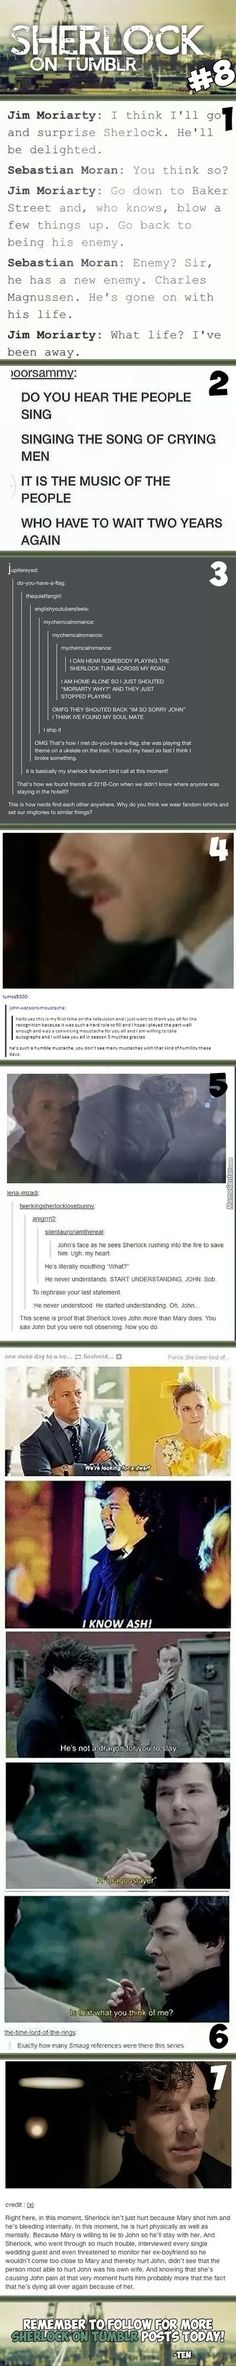 Sherlock On Tumblr #8 IM DYING DO YOU HEAR THE PEOPLE SING SINGING THE SONG OF CRYING MEN ITS IS THE MYSIC OF THE PEOPLE WHO HAVE YO WAIT TWO YEARS AGAIN